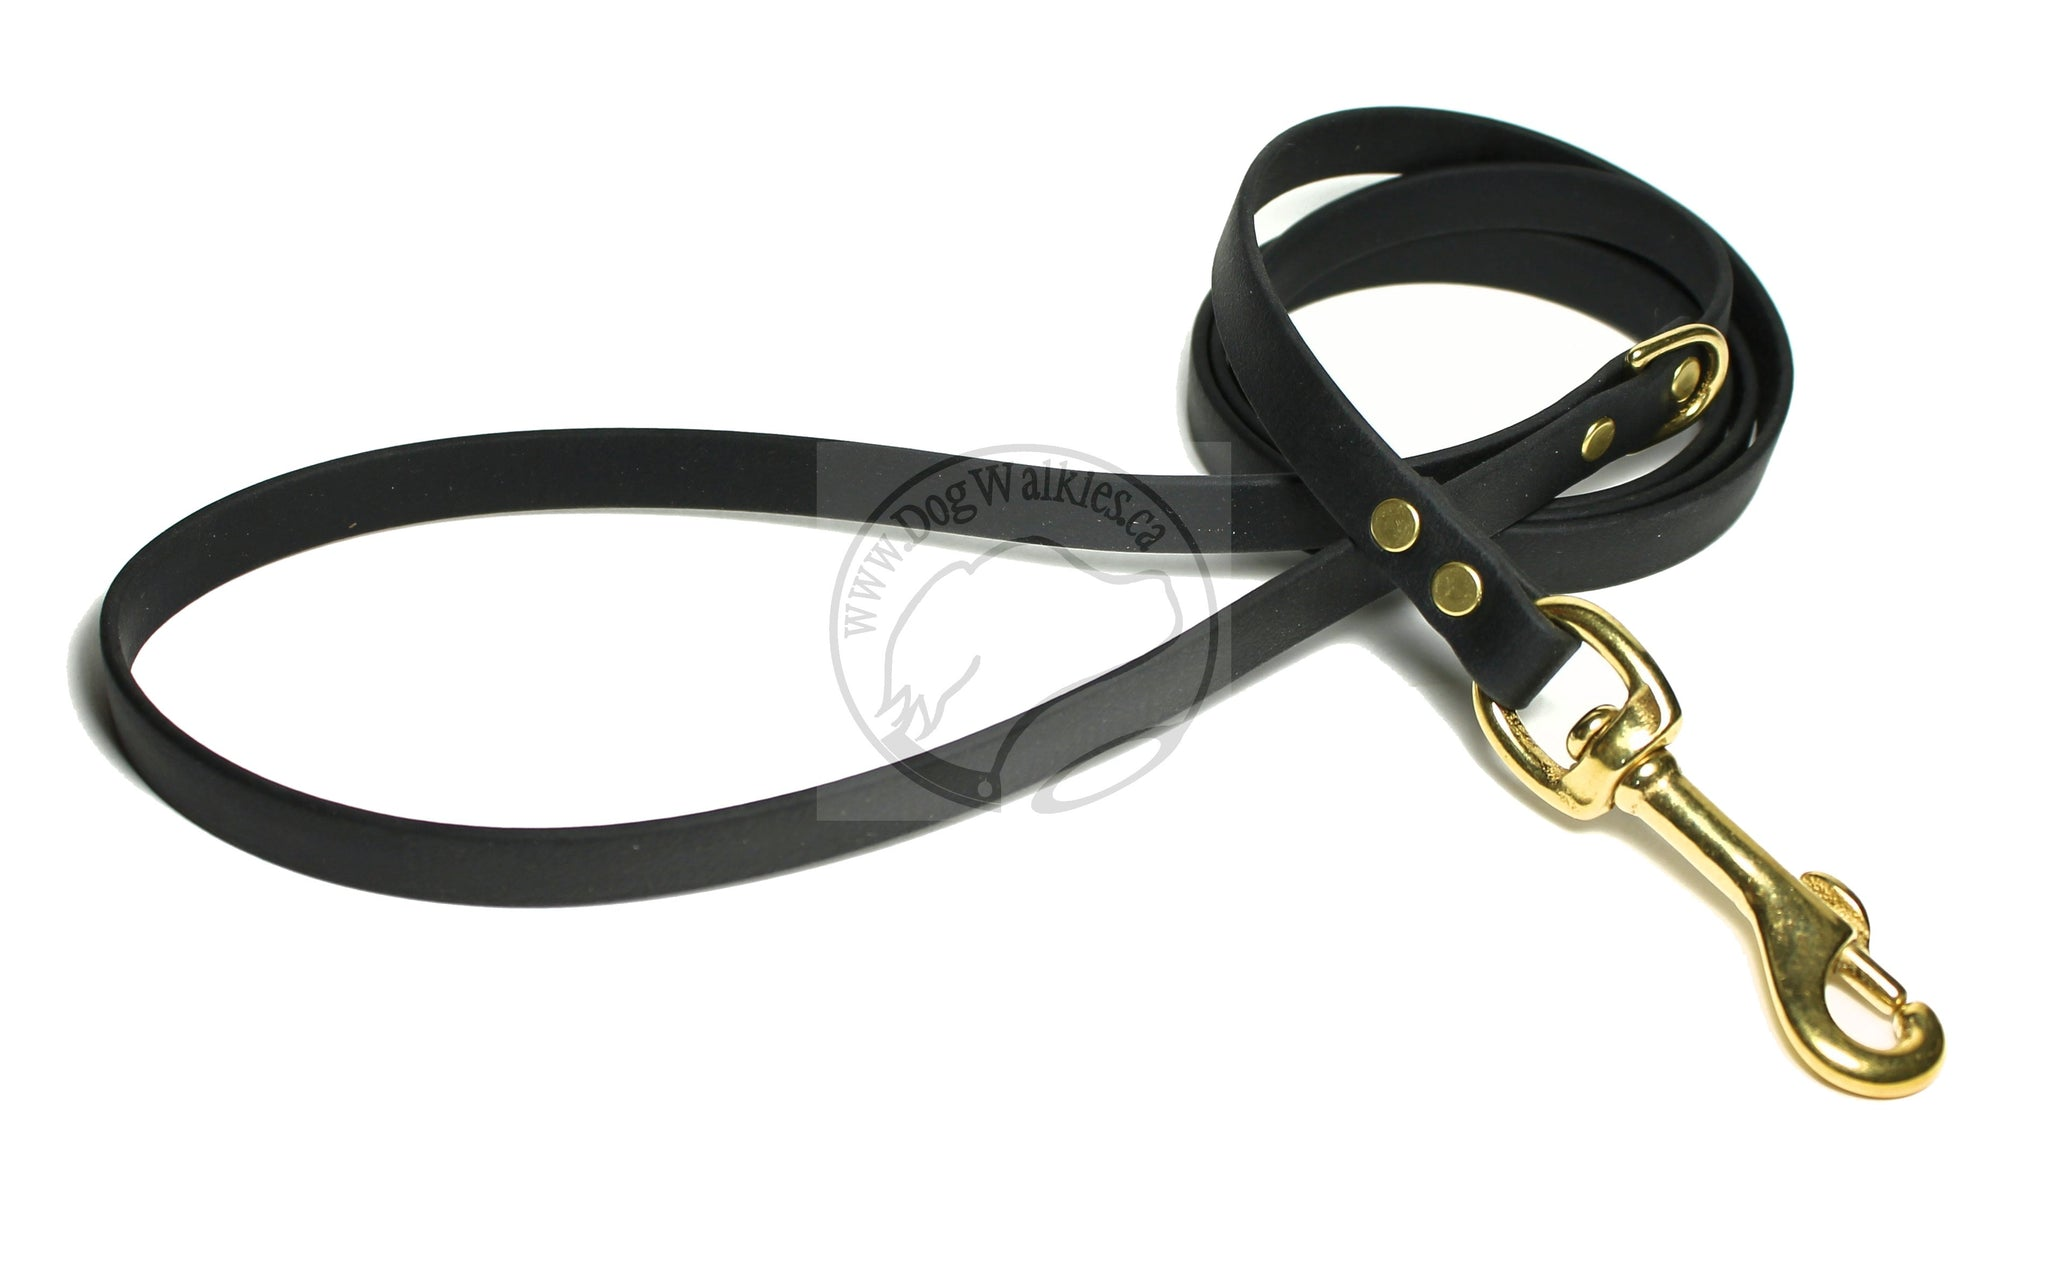 Jet Black Small Dog Leash